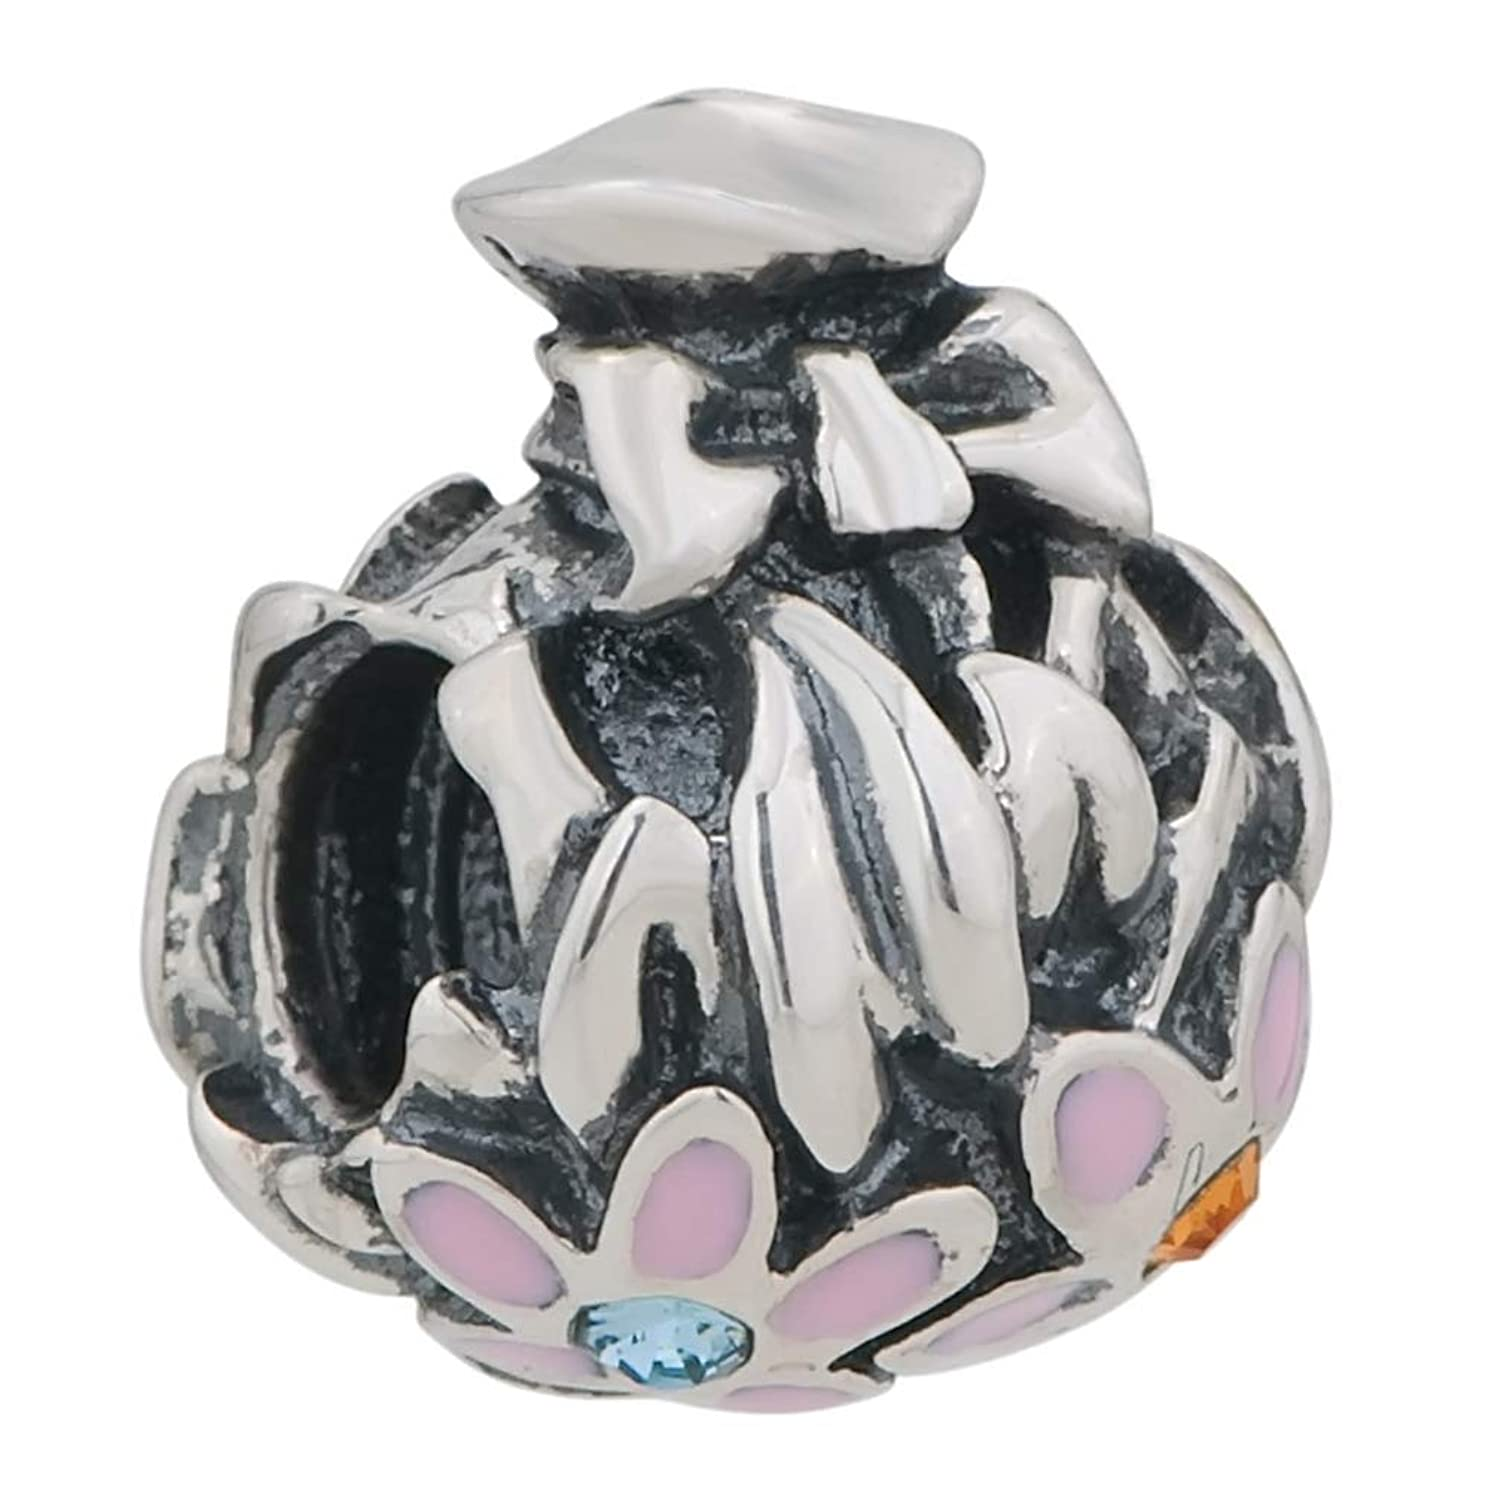 Flowers Gifts for mom Beads 925 Sterling Silver Fit European Charms